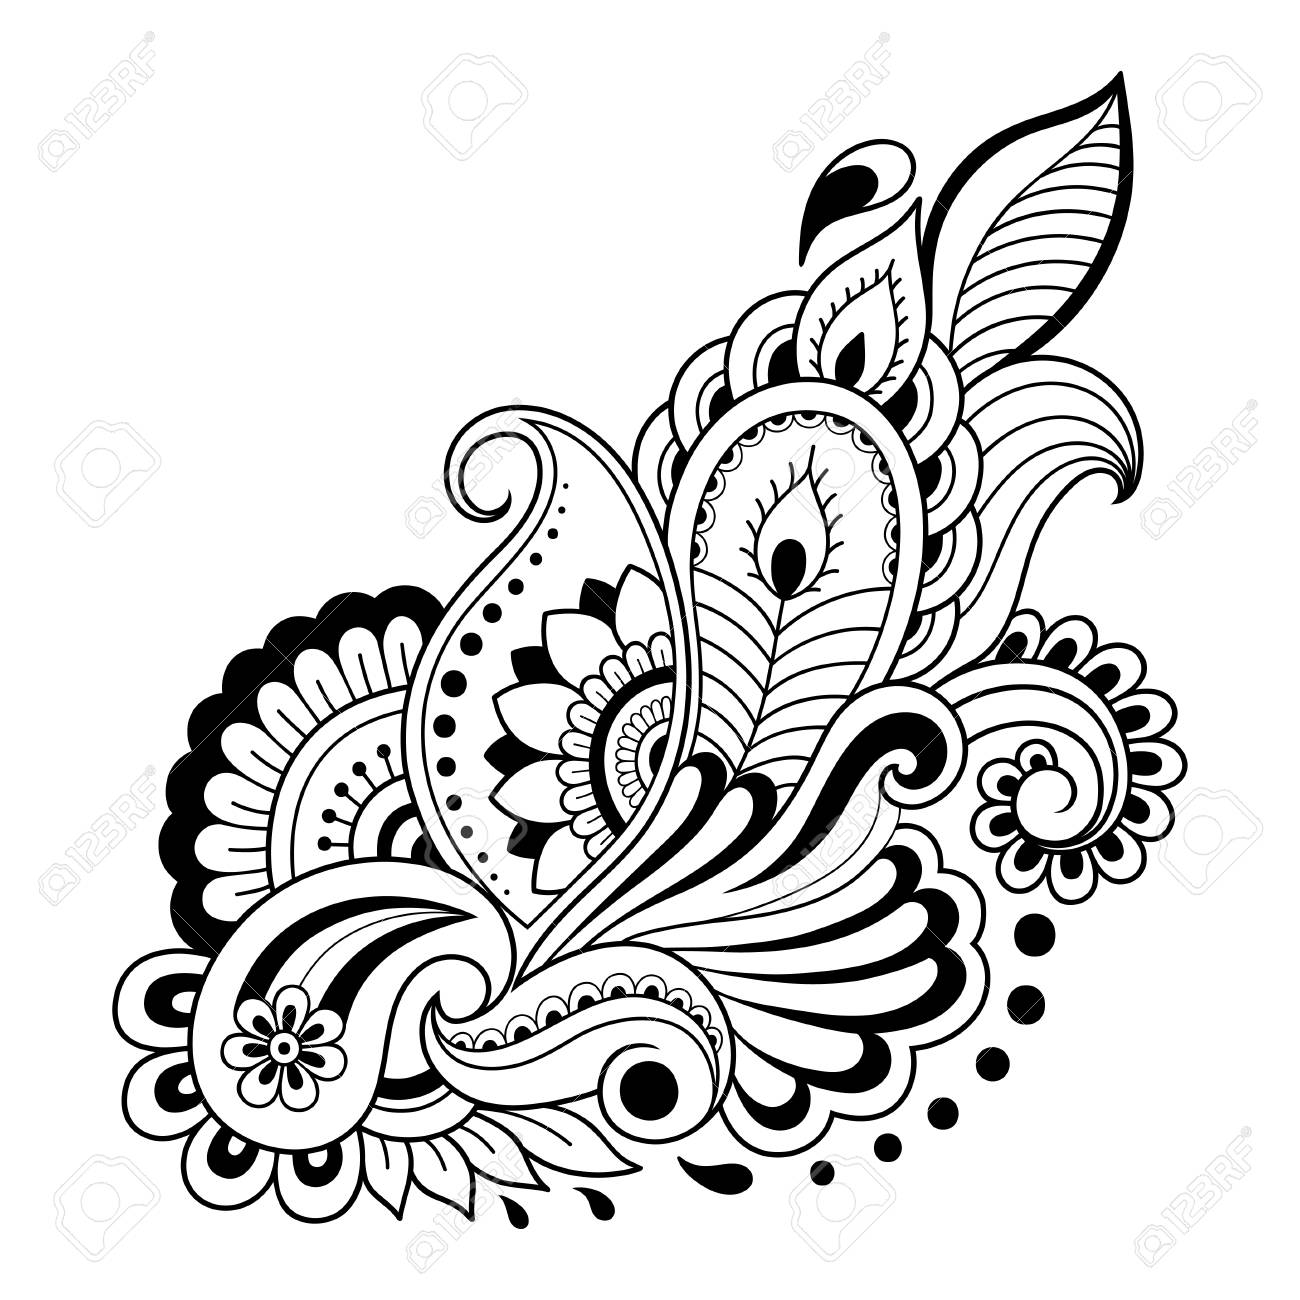 Henna Tattoo Flower Template In Indian Style Ethnic Floral Paisley ...